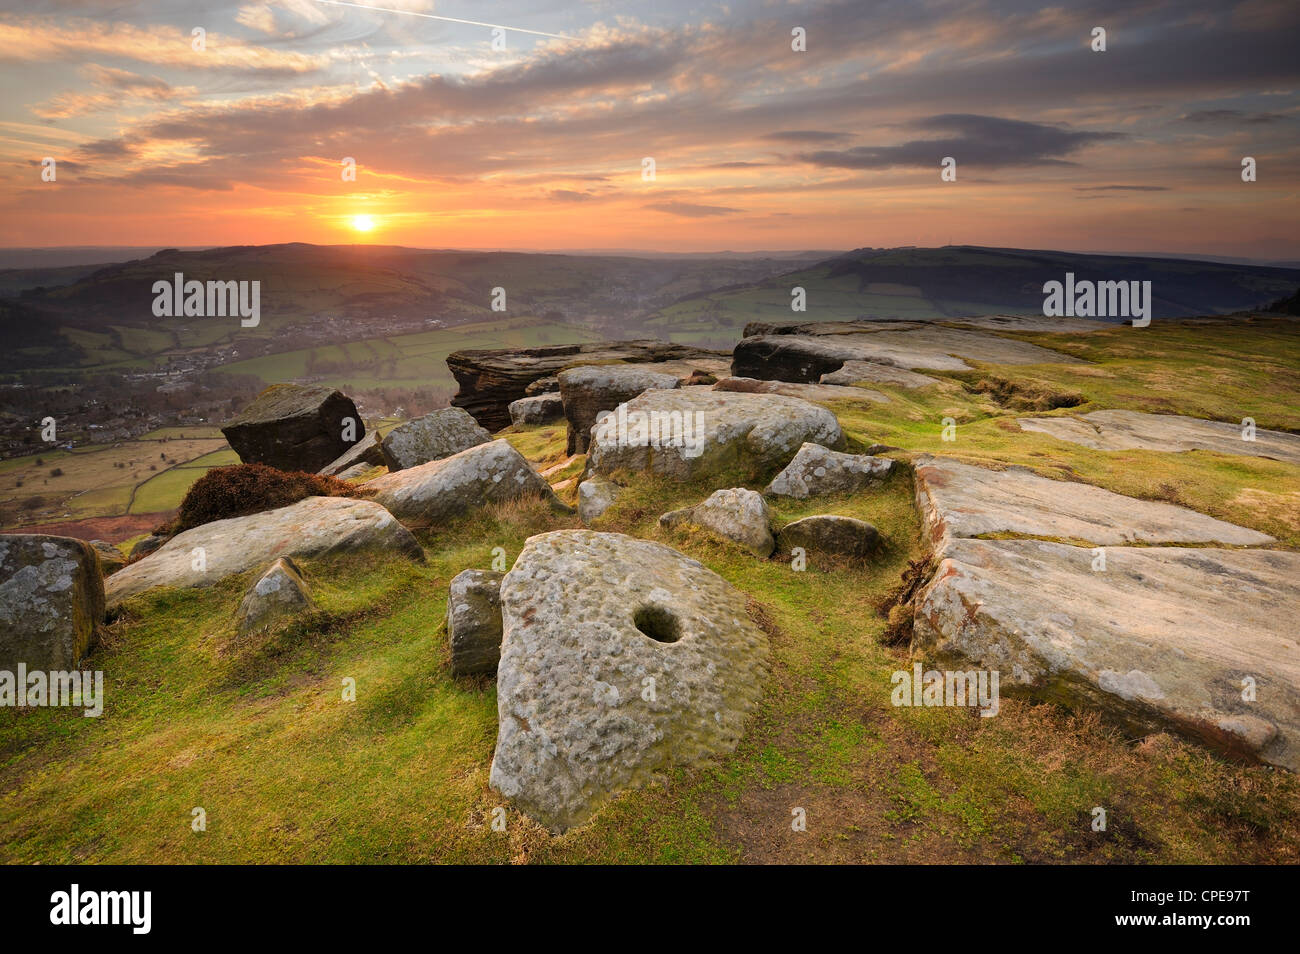 Sunset over millstones, Froggatt and Curbar Edge, Peak District National Park, Derbyshire, England, United Kingdom, - Stock Image